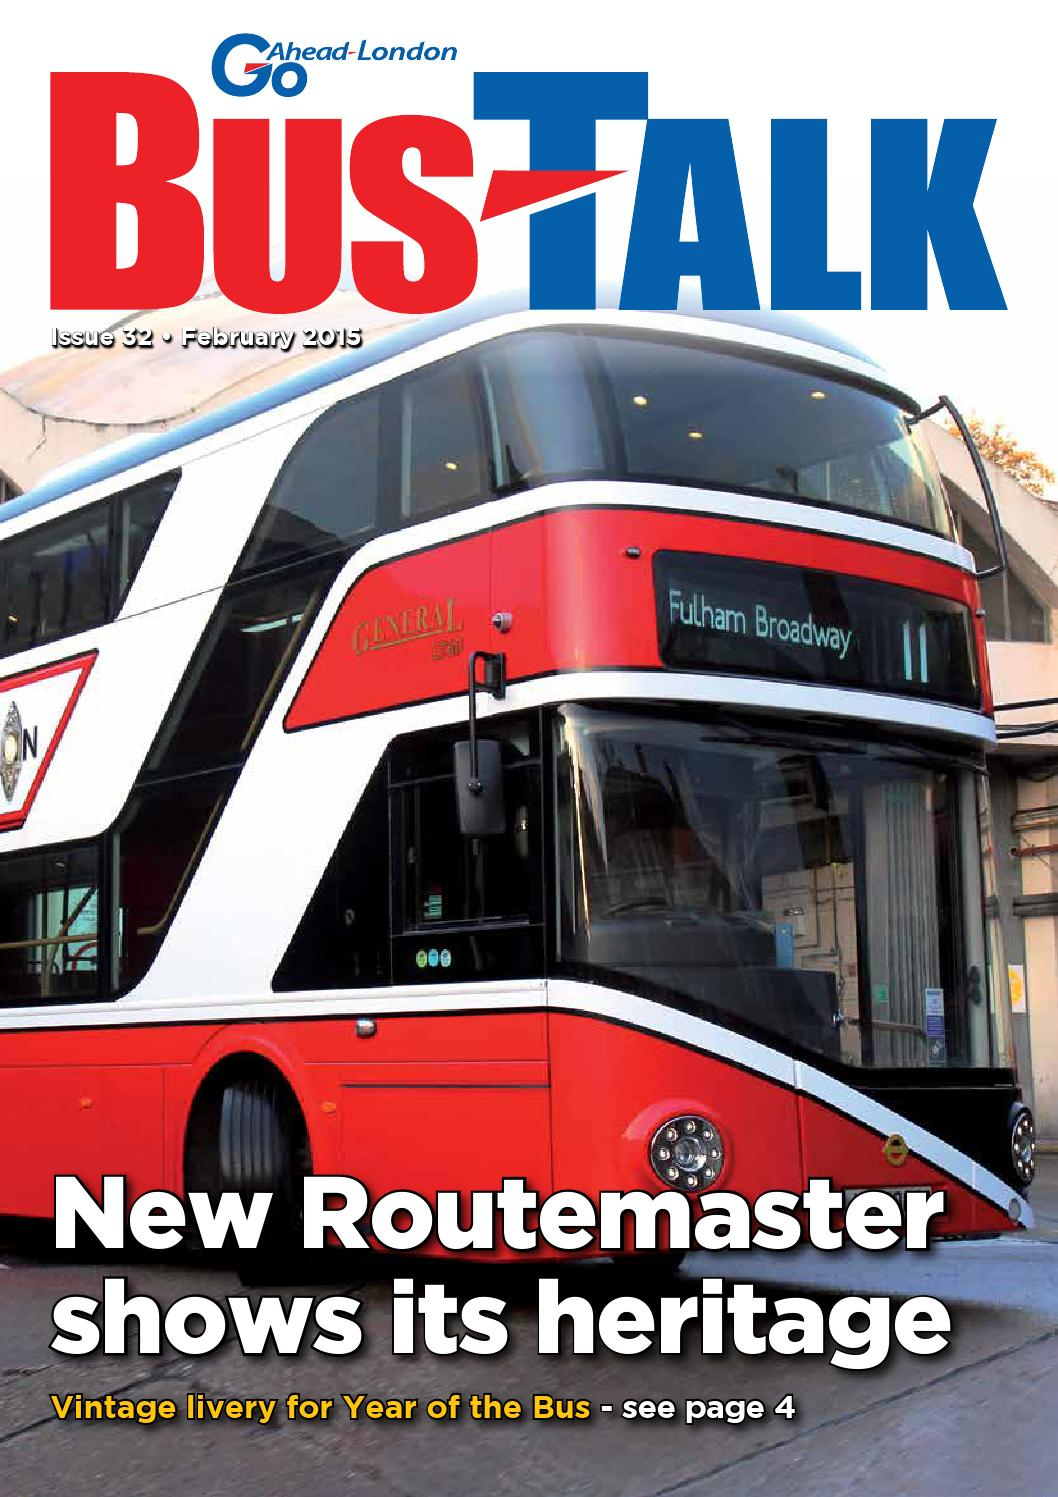 bus talk - issue 32 - february 2015go-ahead london - issuu